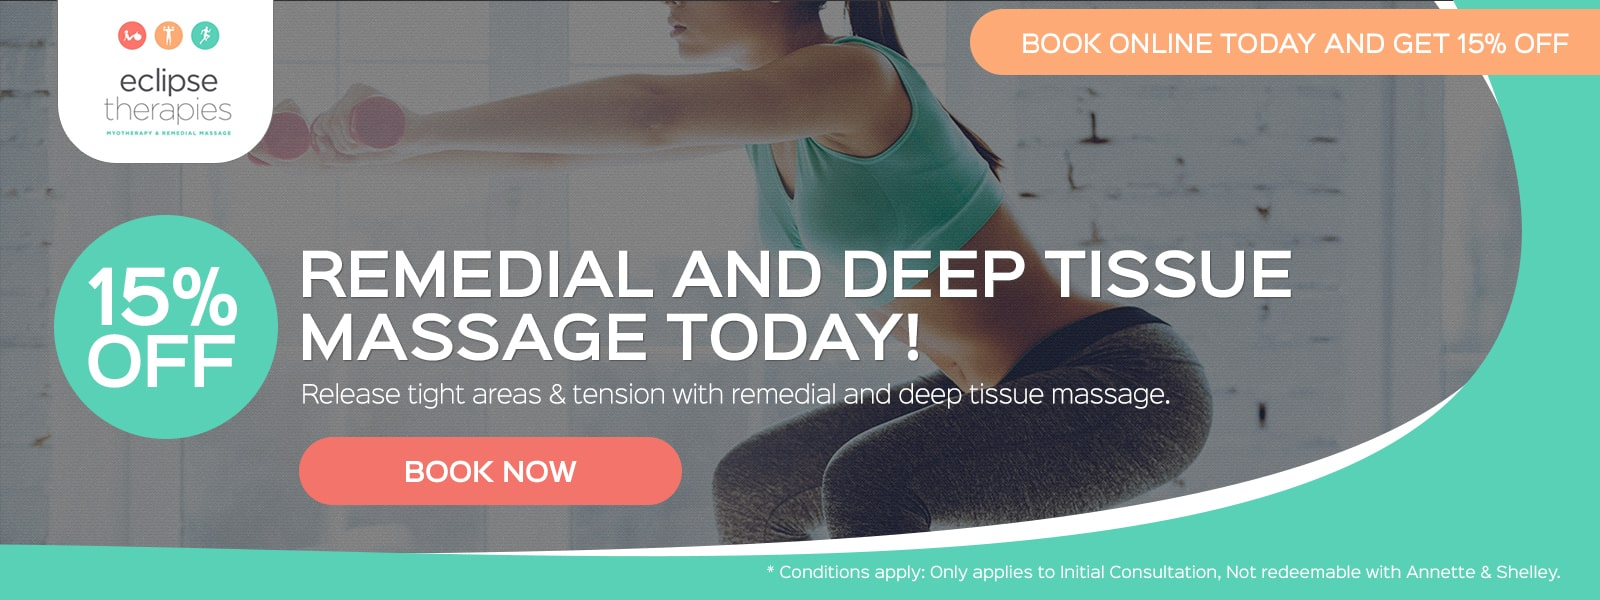 Remedial & Deep Tissue Massage